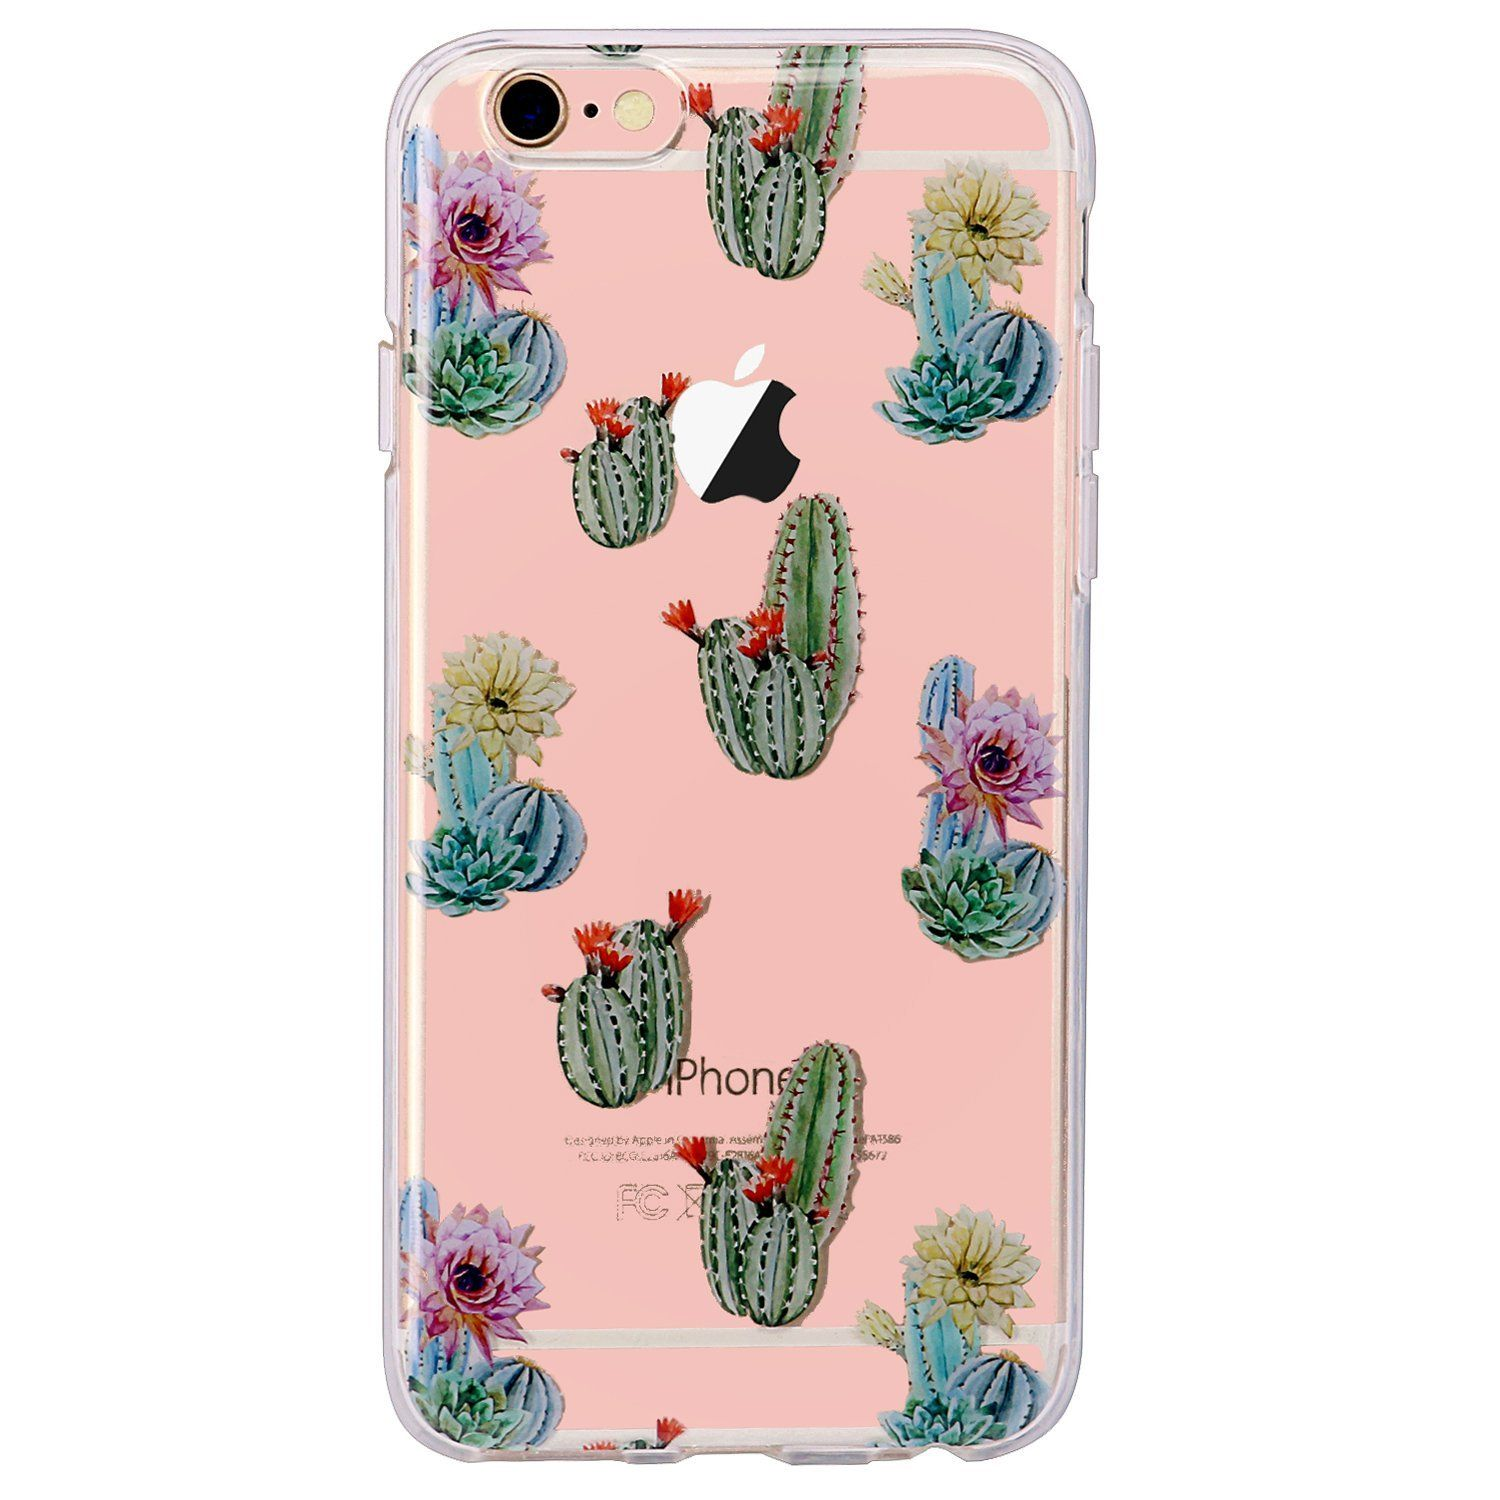 luolnh iphone 6s cases